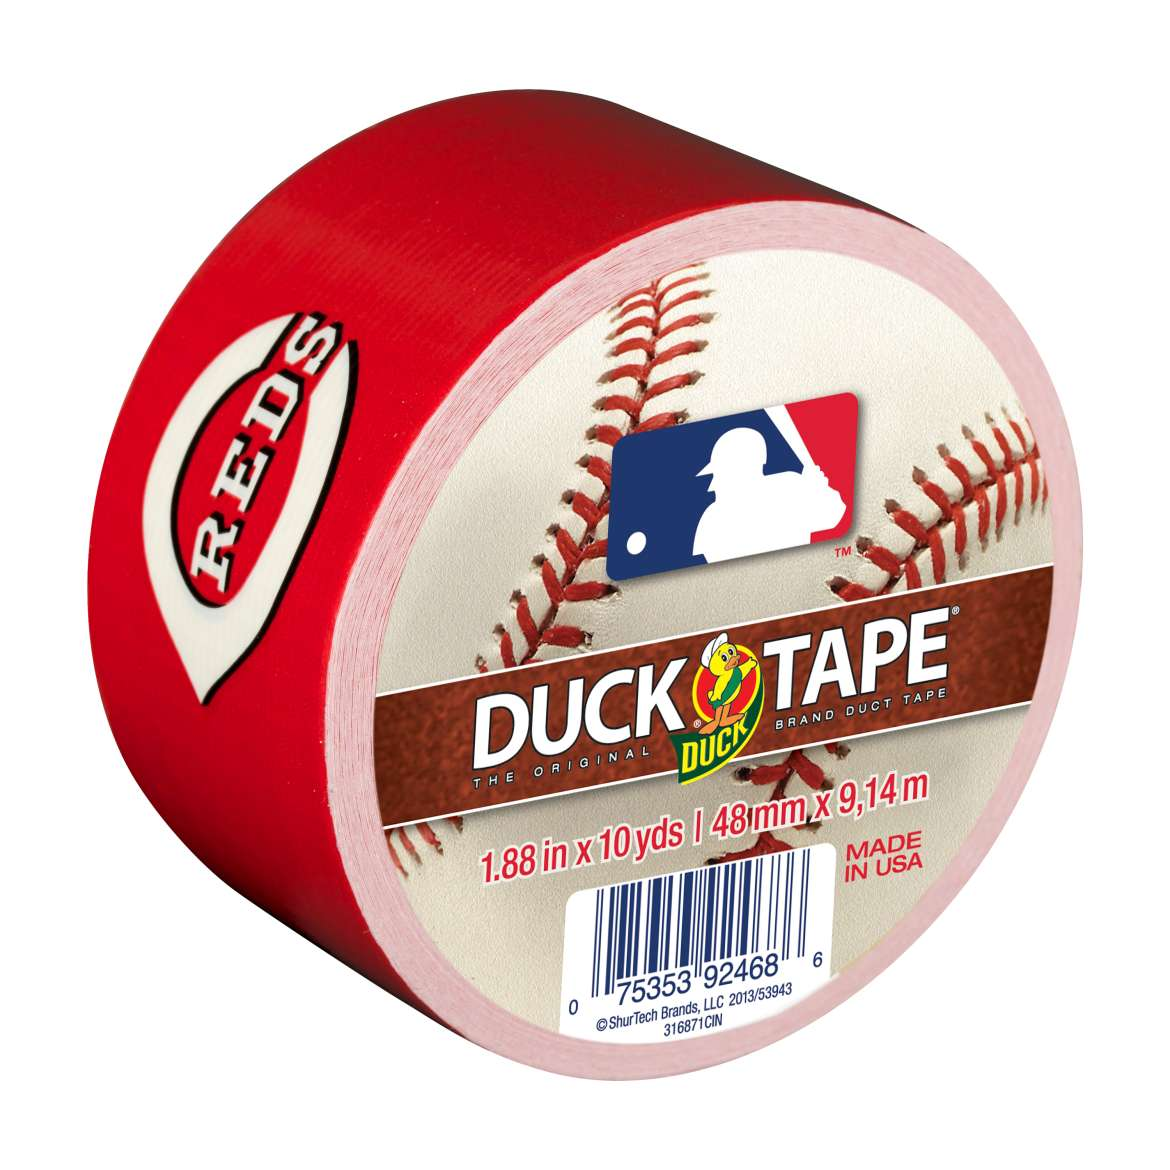 MLB Licensed Duck Tape® Brand Duct Tape - Cincinnati Reds, 1.88 in. x 10 yd. Image